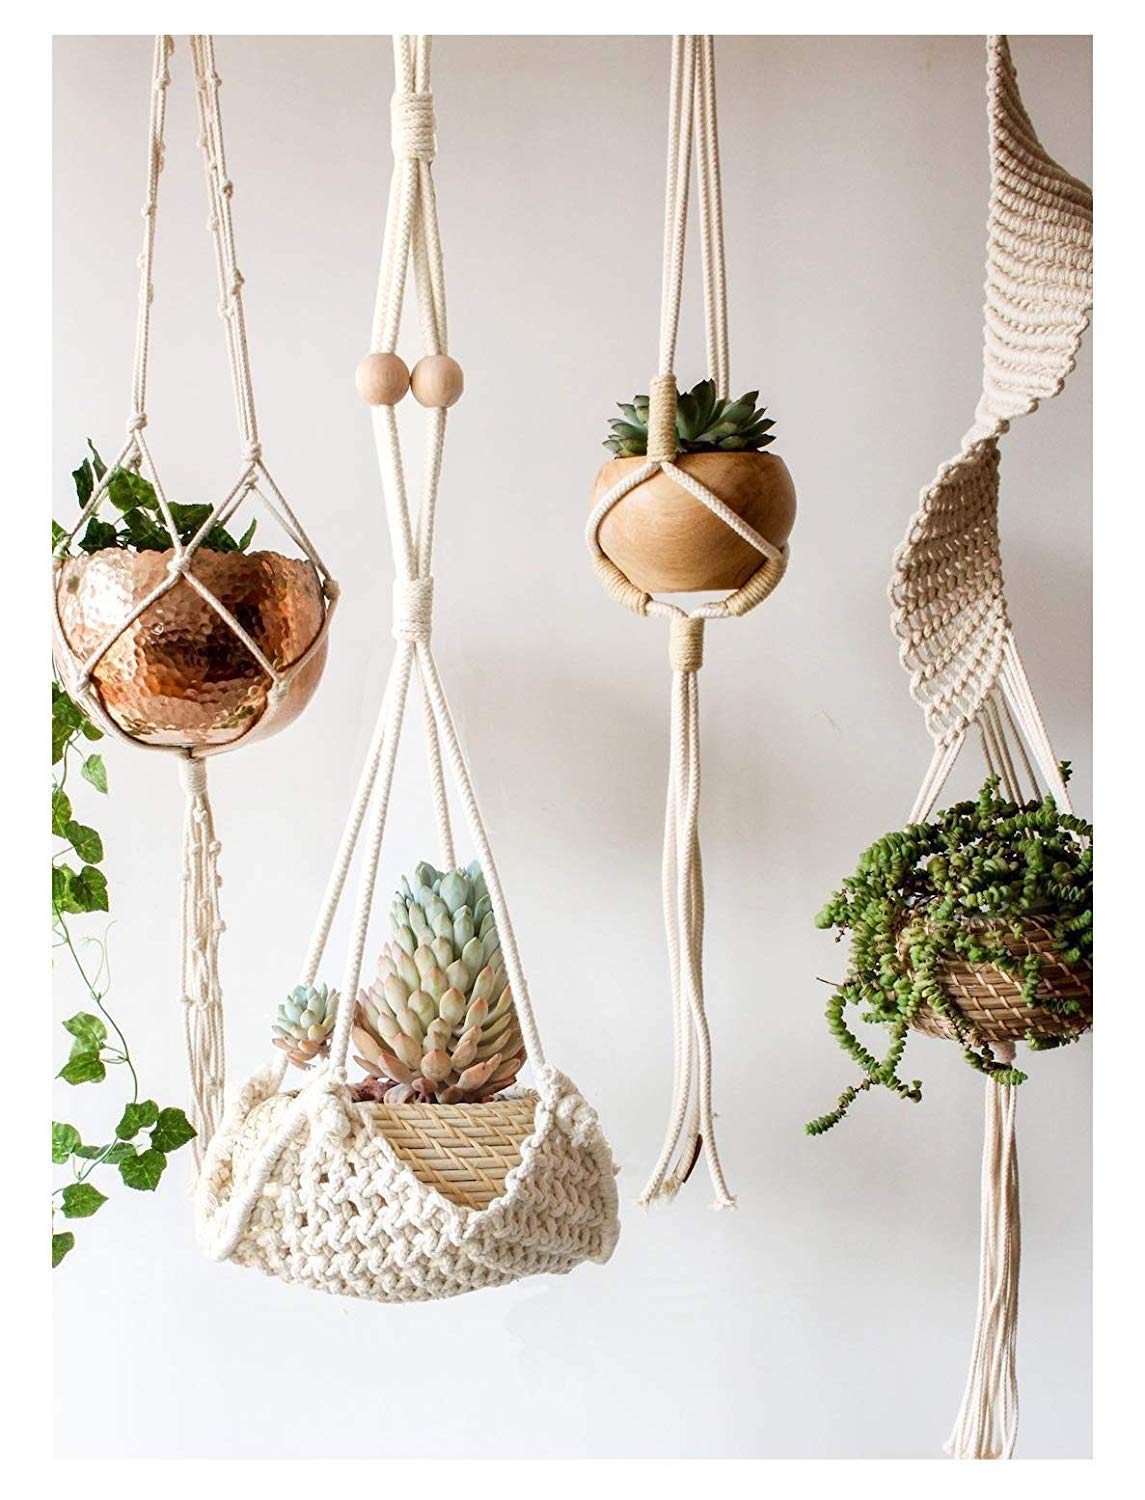 Flber Macrame Hanging Planter Home Décor Cotton Rope Handwoven